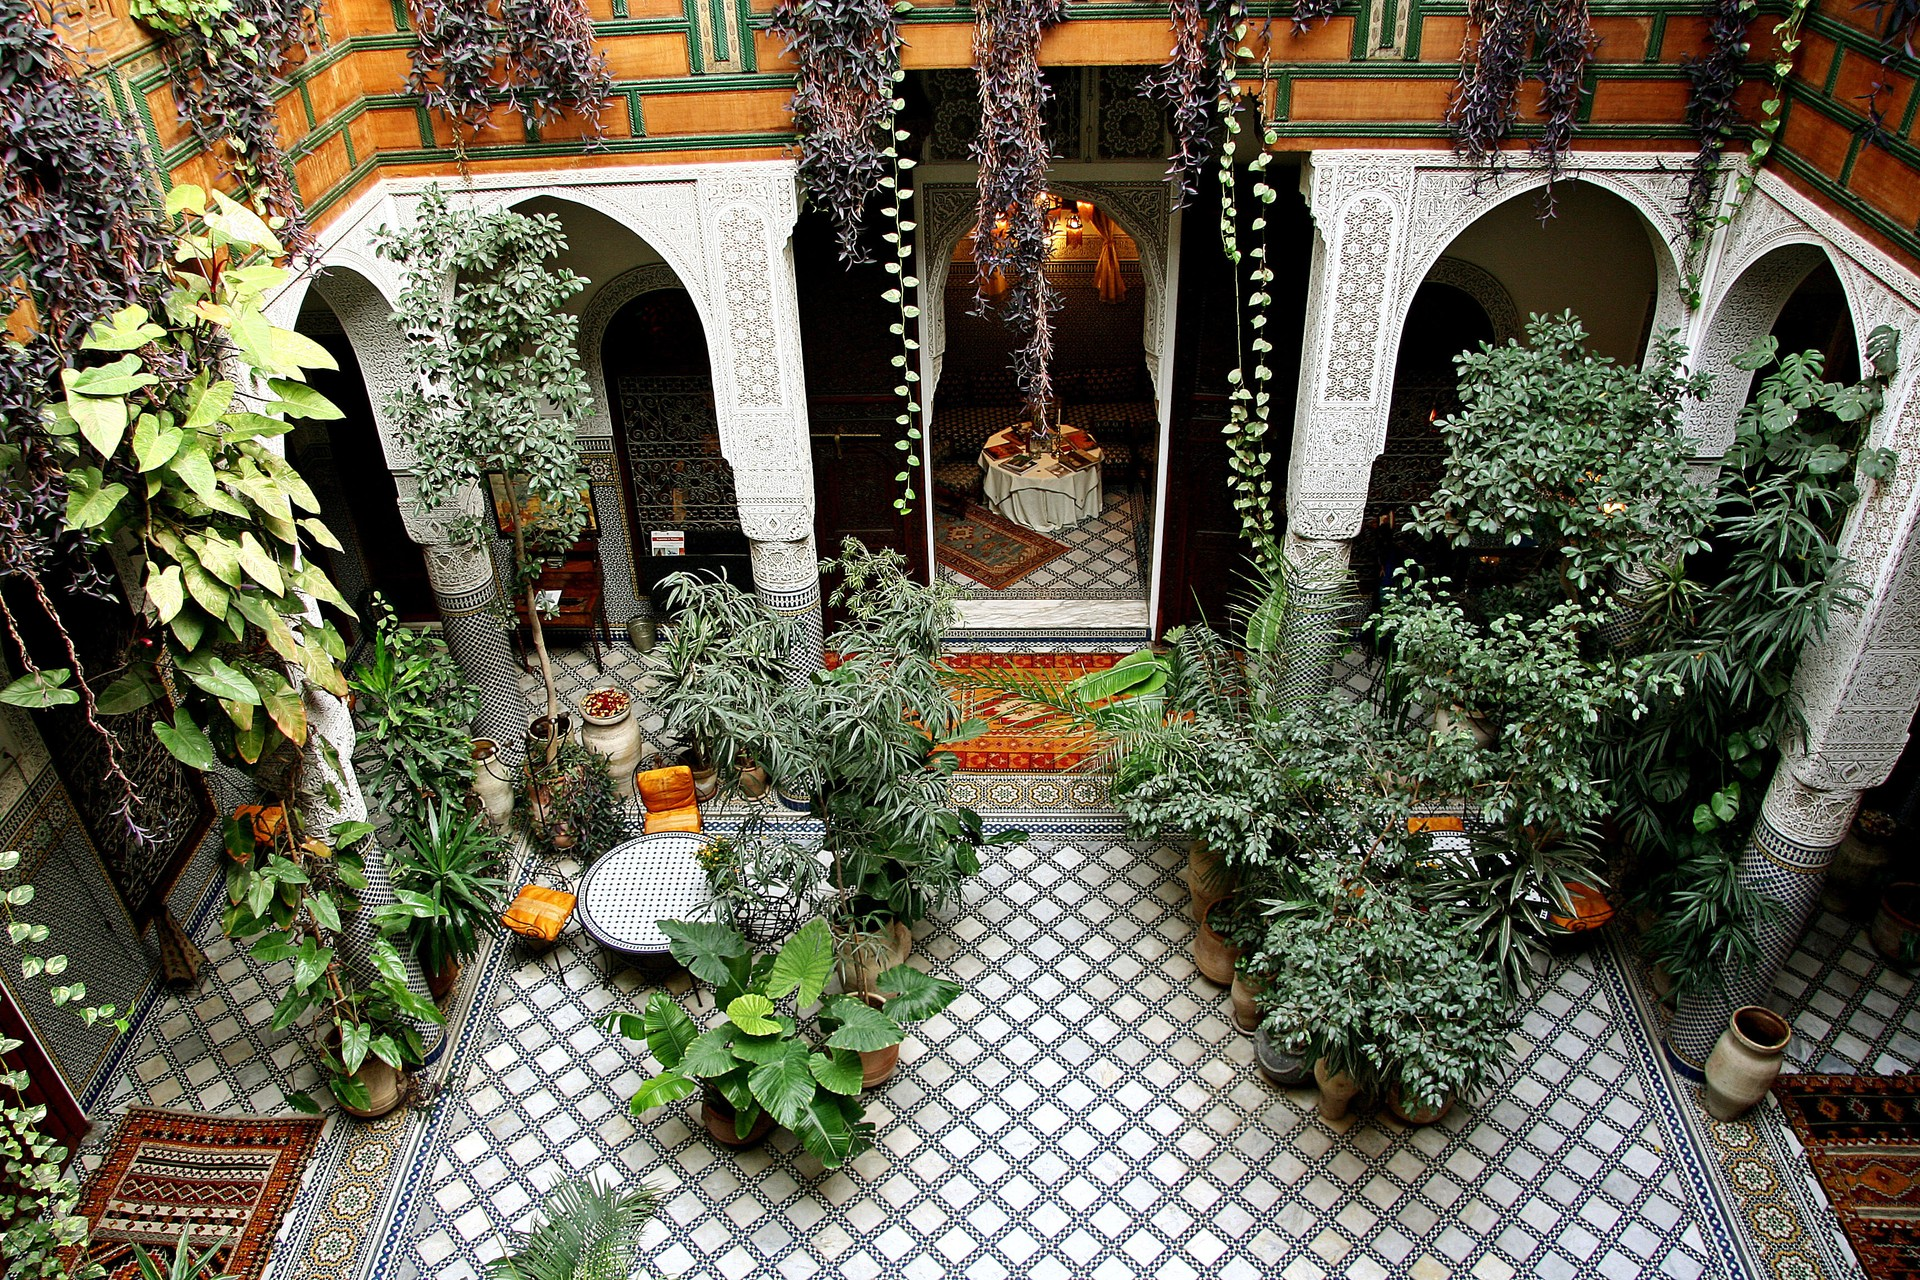 The ornate interior of a Moroccan home with beautiful tiles